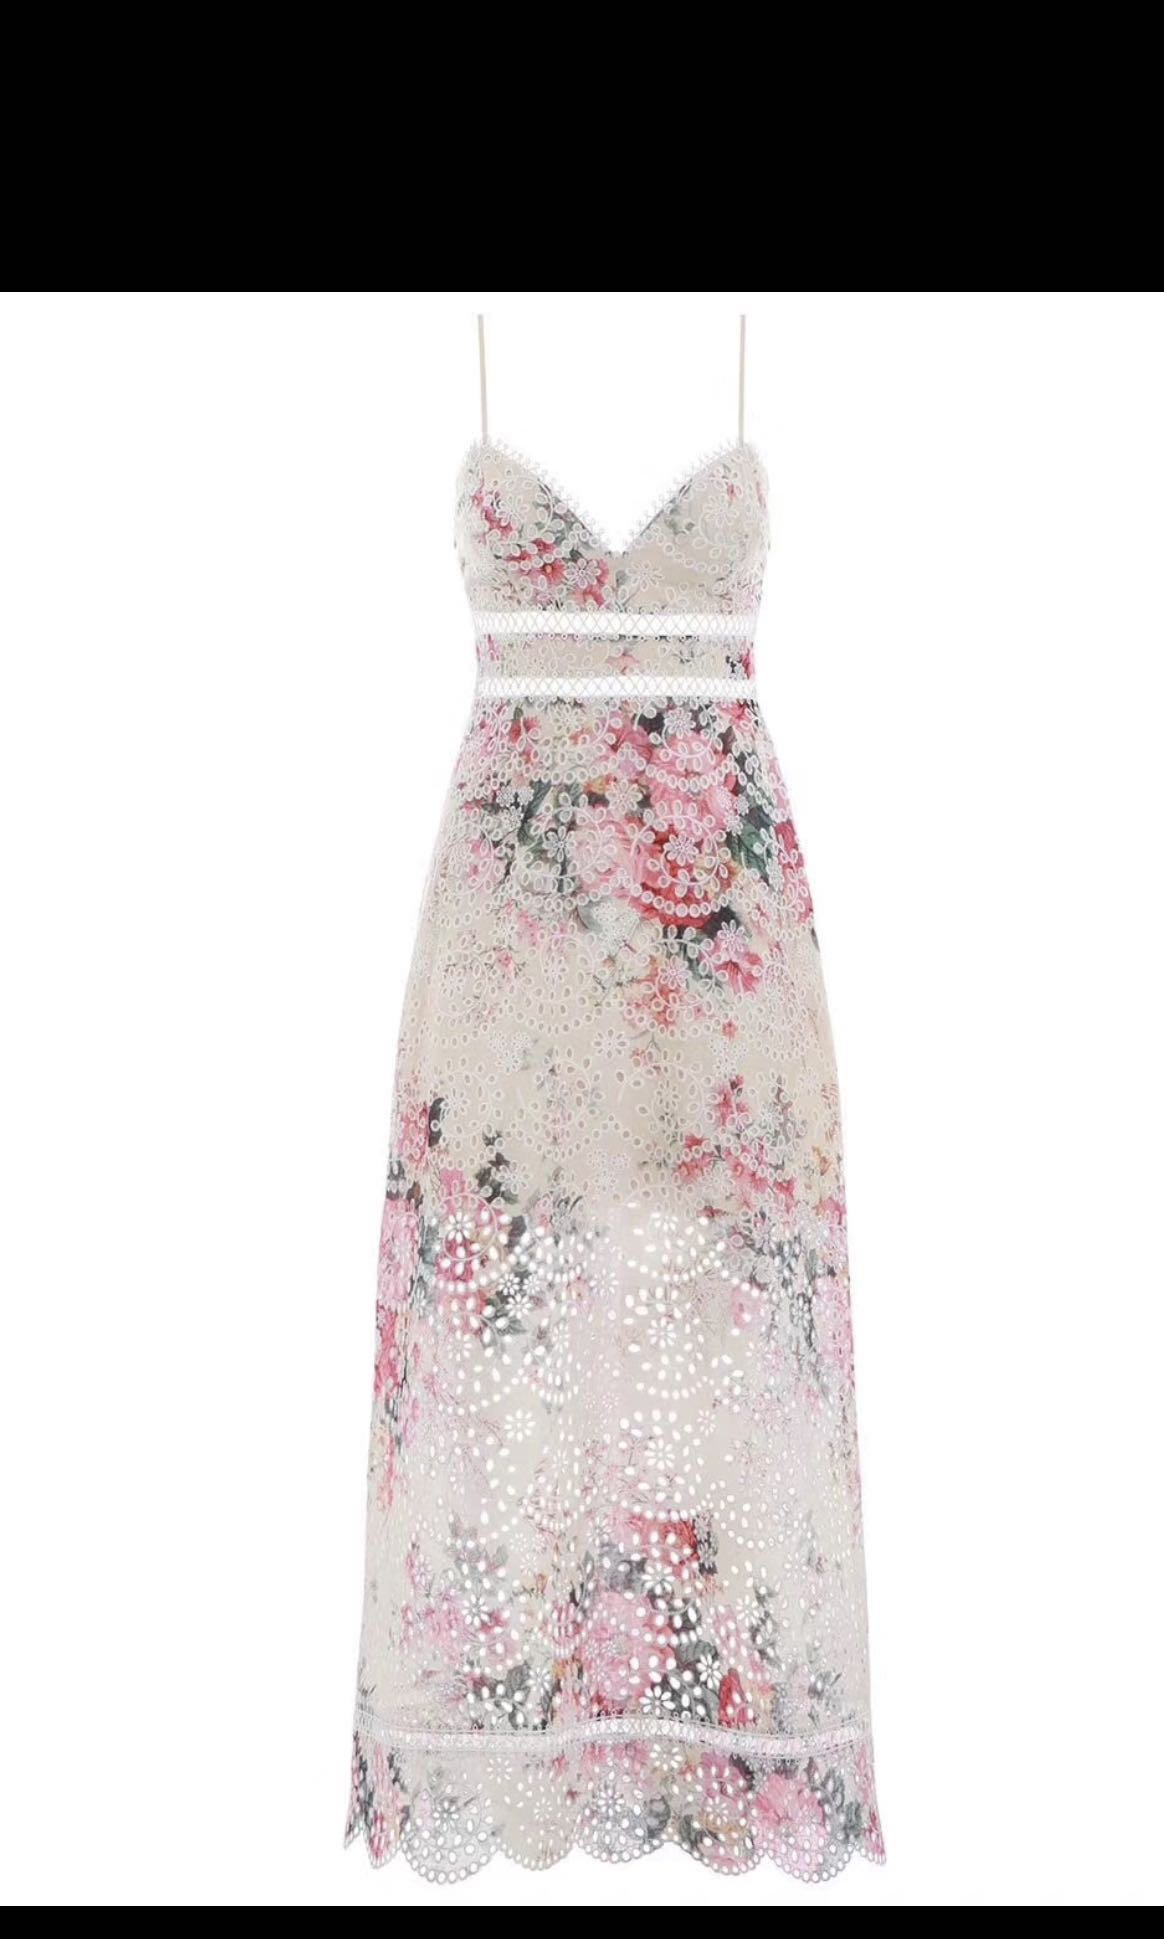 e8d2be2bafc69 BNWT Authentic ZIMMERMANN Laelia Diamond Bralette Dress